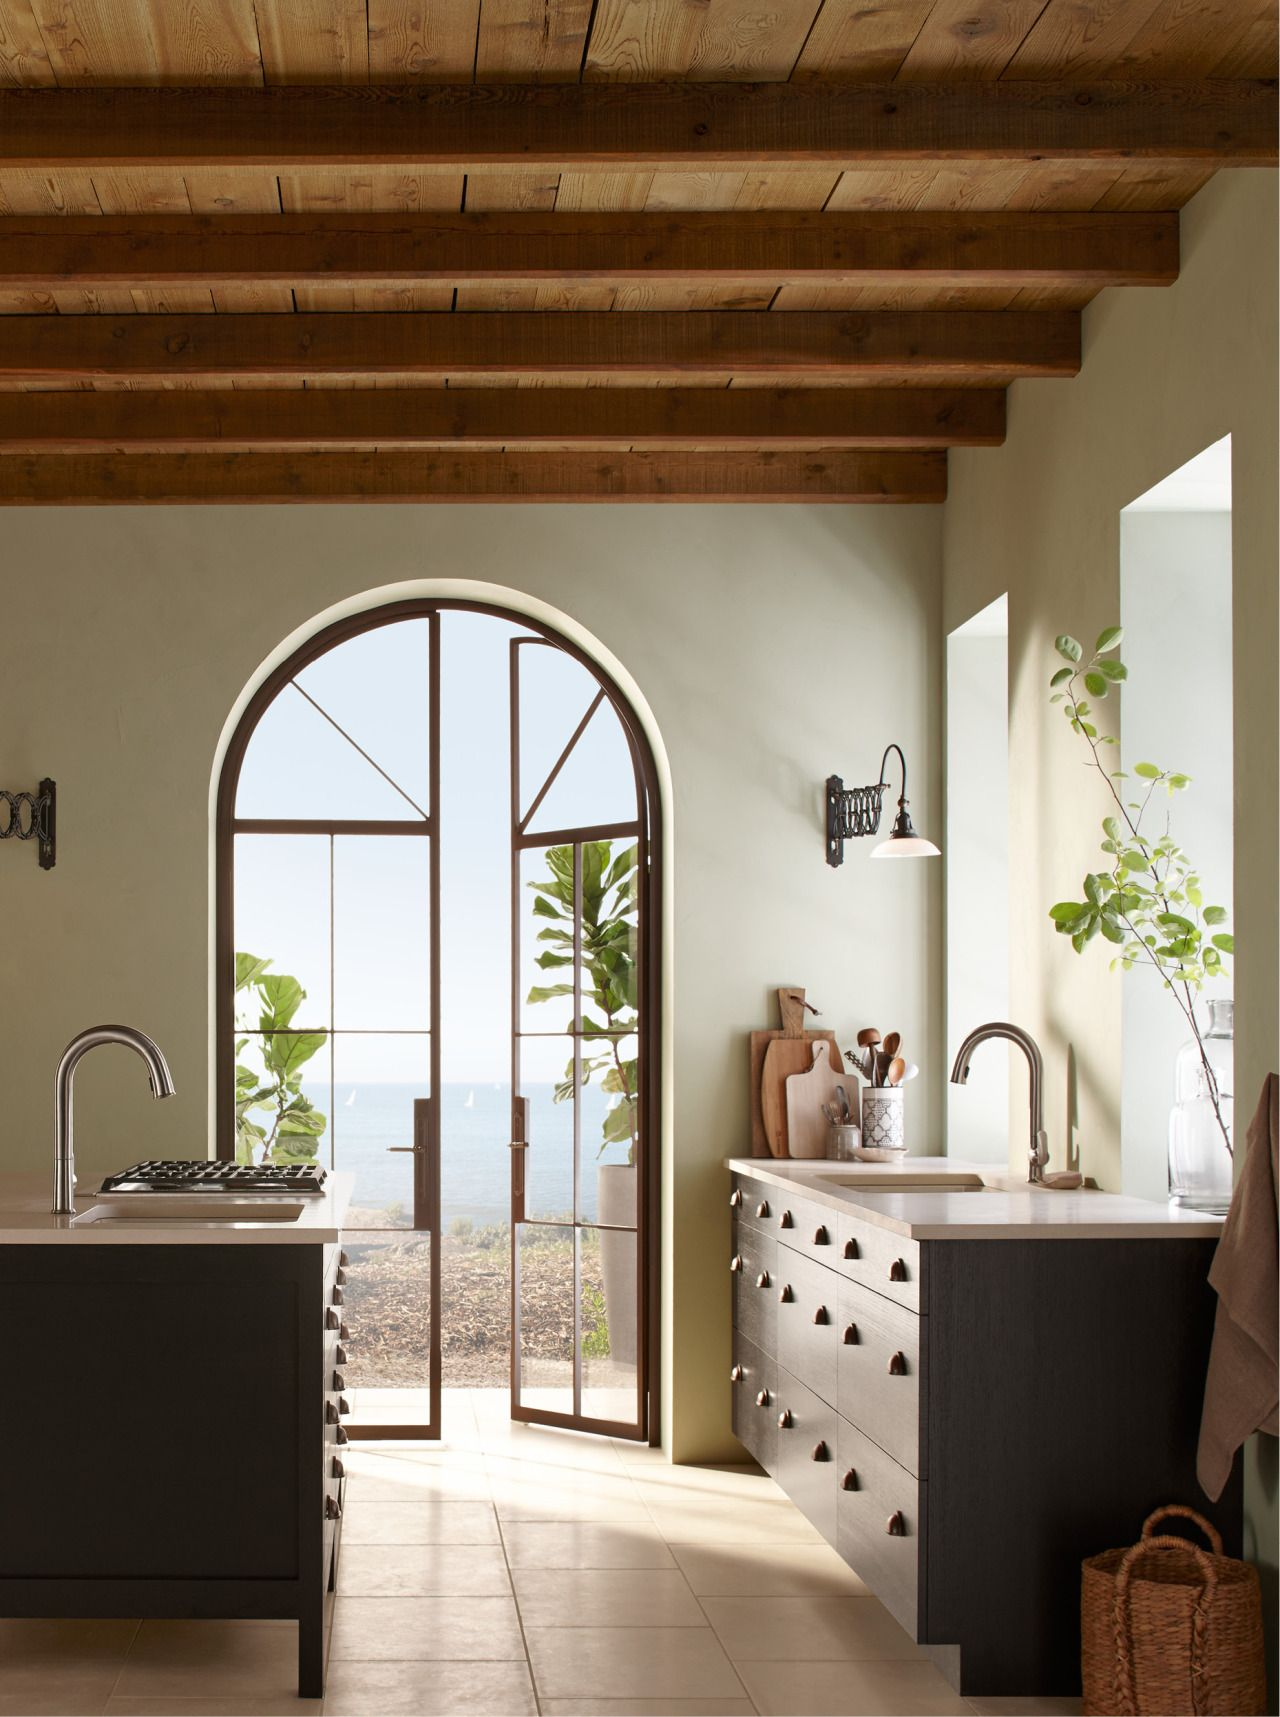 Kohler Muebles Punta Del Este - Bold Ideas From Kohler Home Design Pinterest[mjhdah]https://lookaside.fbsbx.com/lookaside/crawler/media/?media_id=1538338736255722